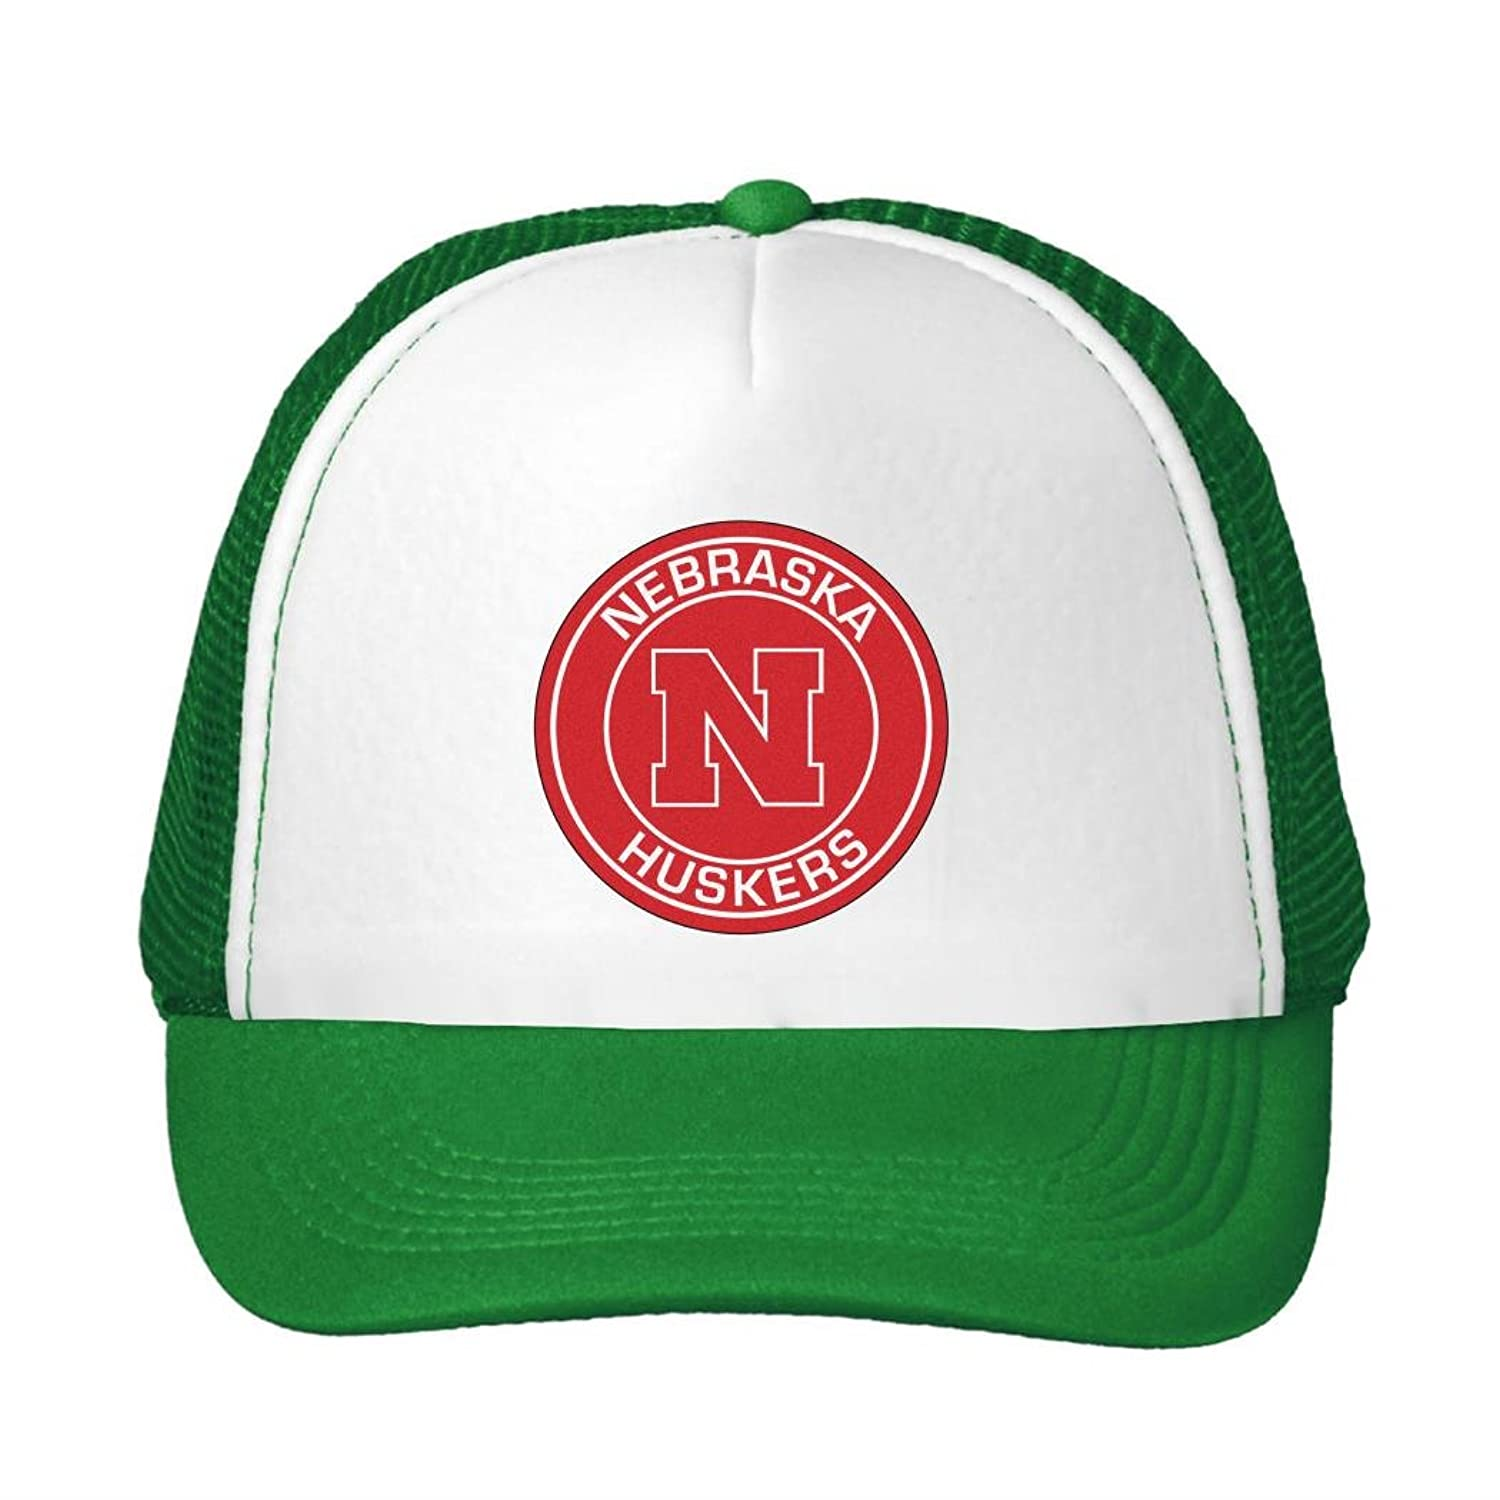 University of Nebraska Cornhuskers Opeeda Adjustable Trucker Hat Snapback Caps For Men/Women